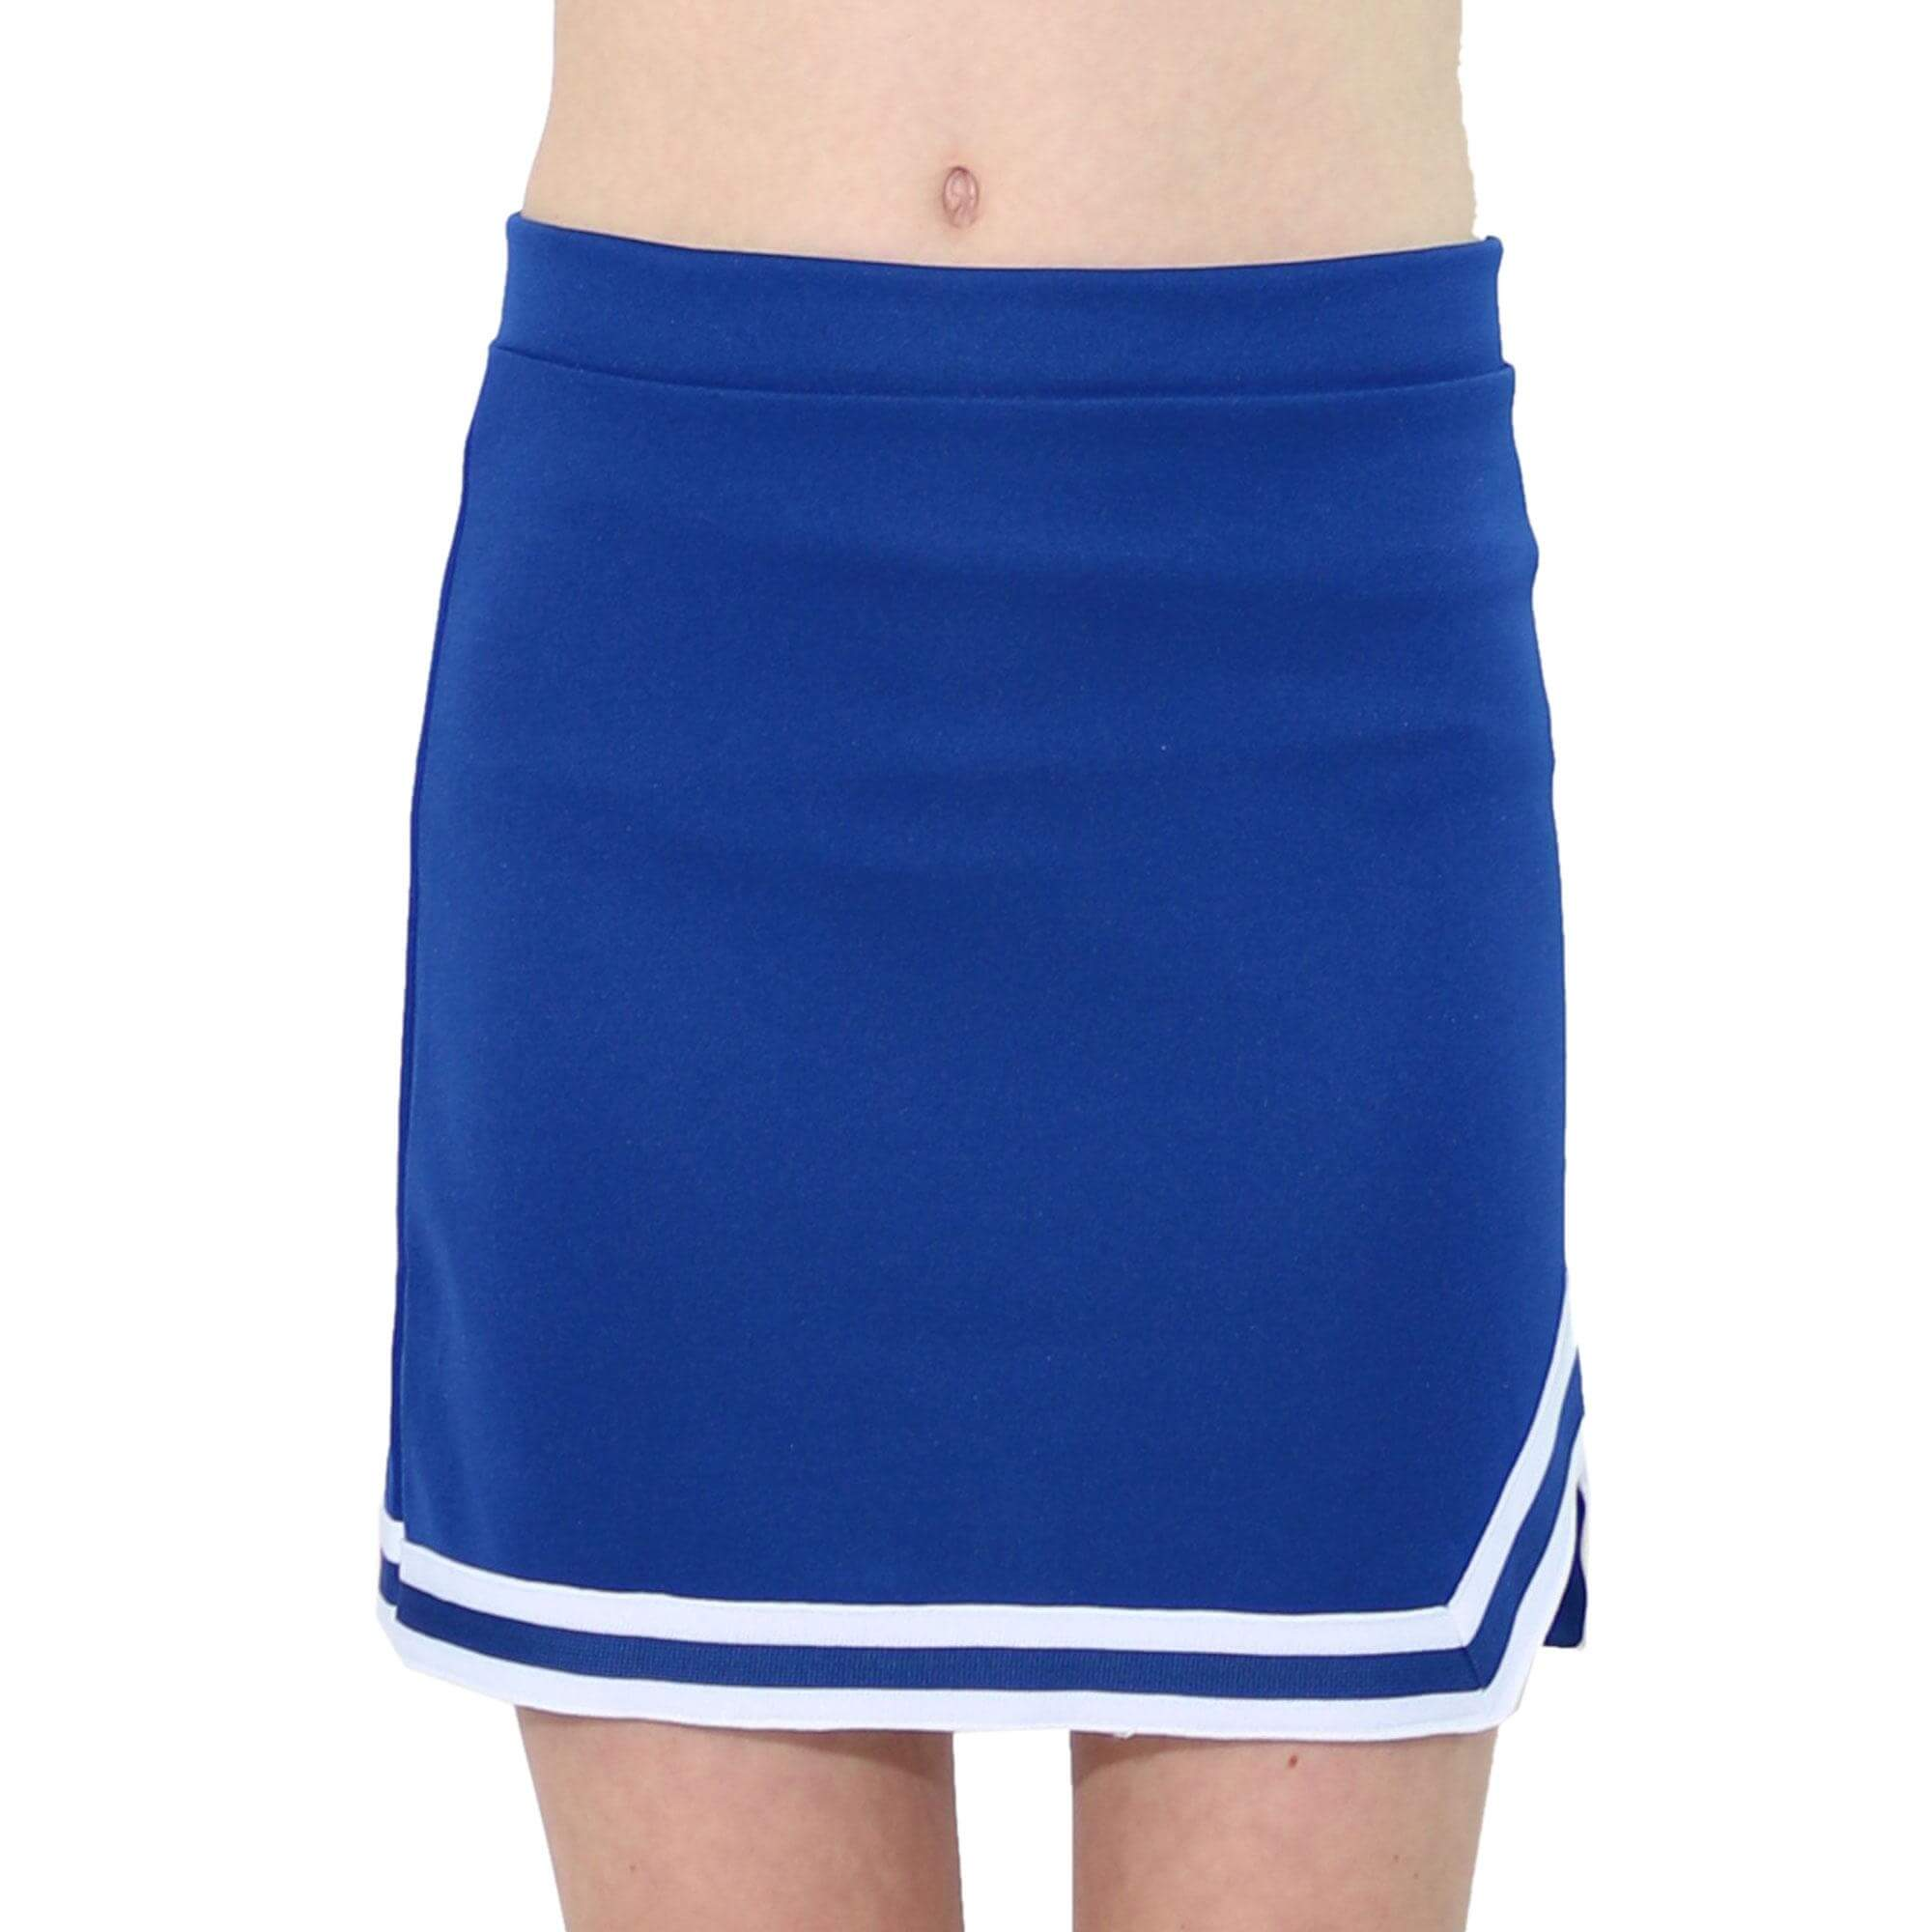 Danzcue Child Double V A-Line Cheer Skirt